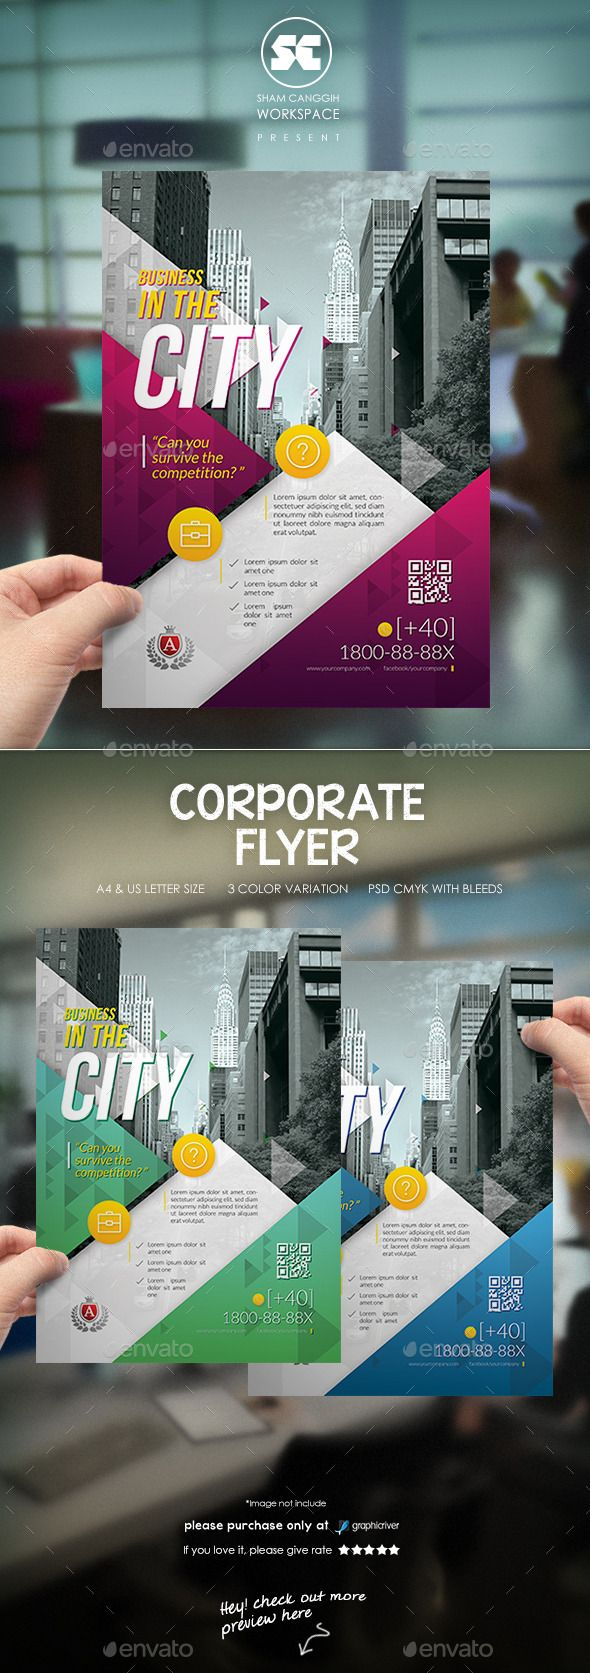 Creative Corporate Flyer get unlimited graphic design at http://hyadesign.com/